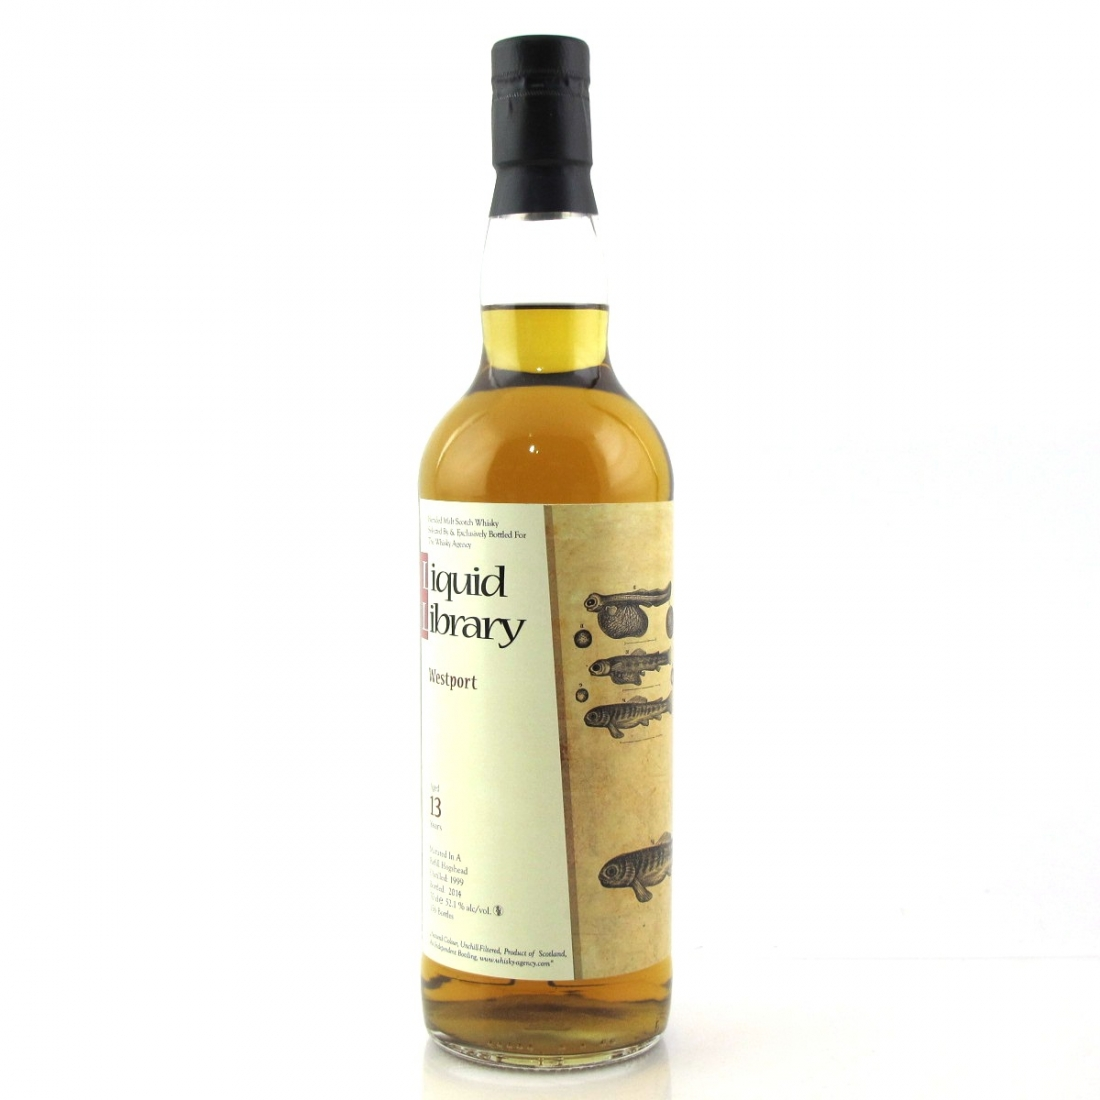 Westport 1999 Whisky Agency 13 Year Old / Liquid Library